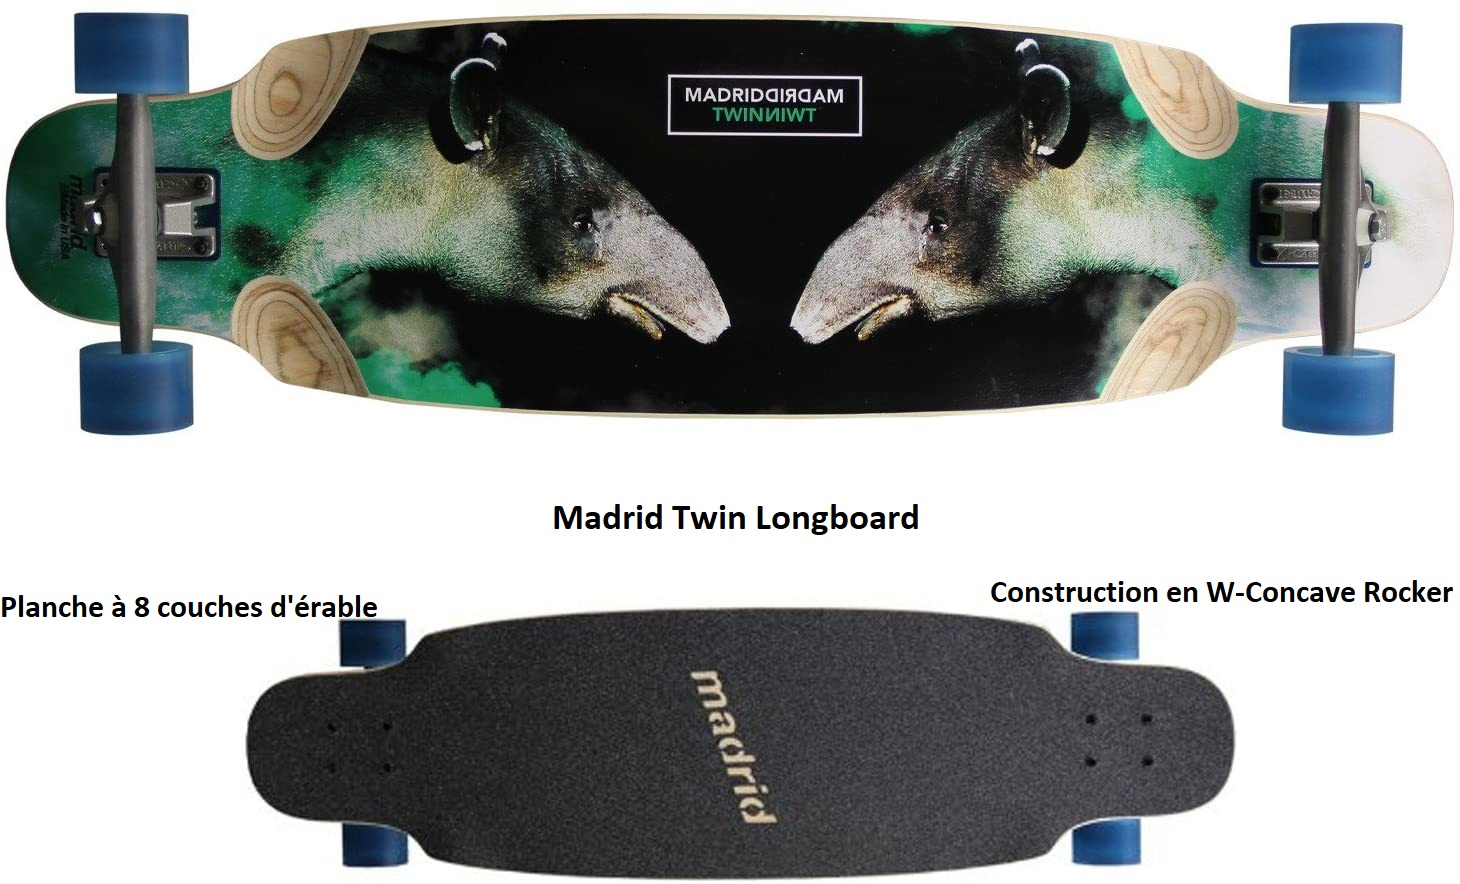 Longboard Madrid Twin